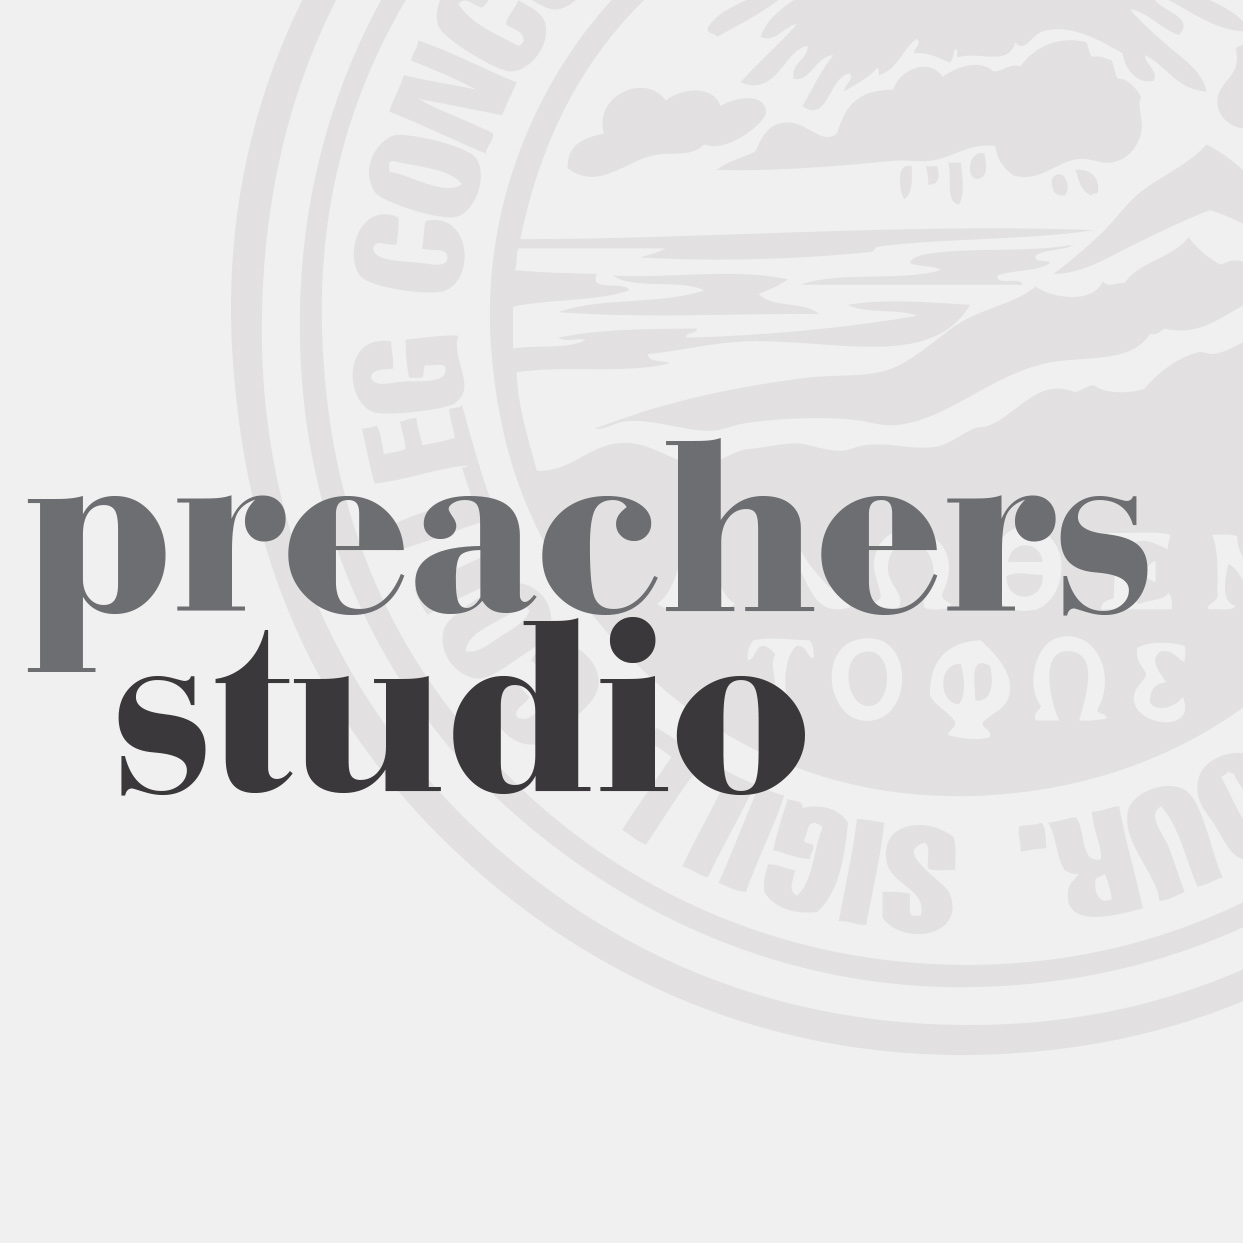 Preachers Studio: Roosevelt Gray, Jr.